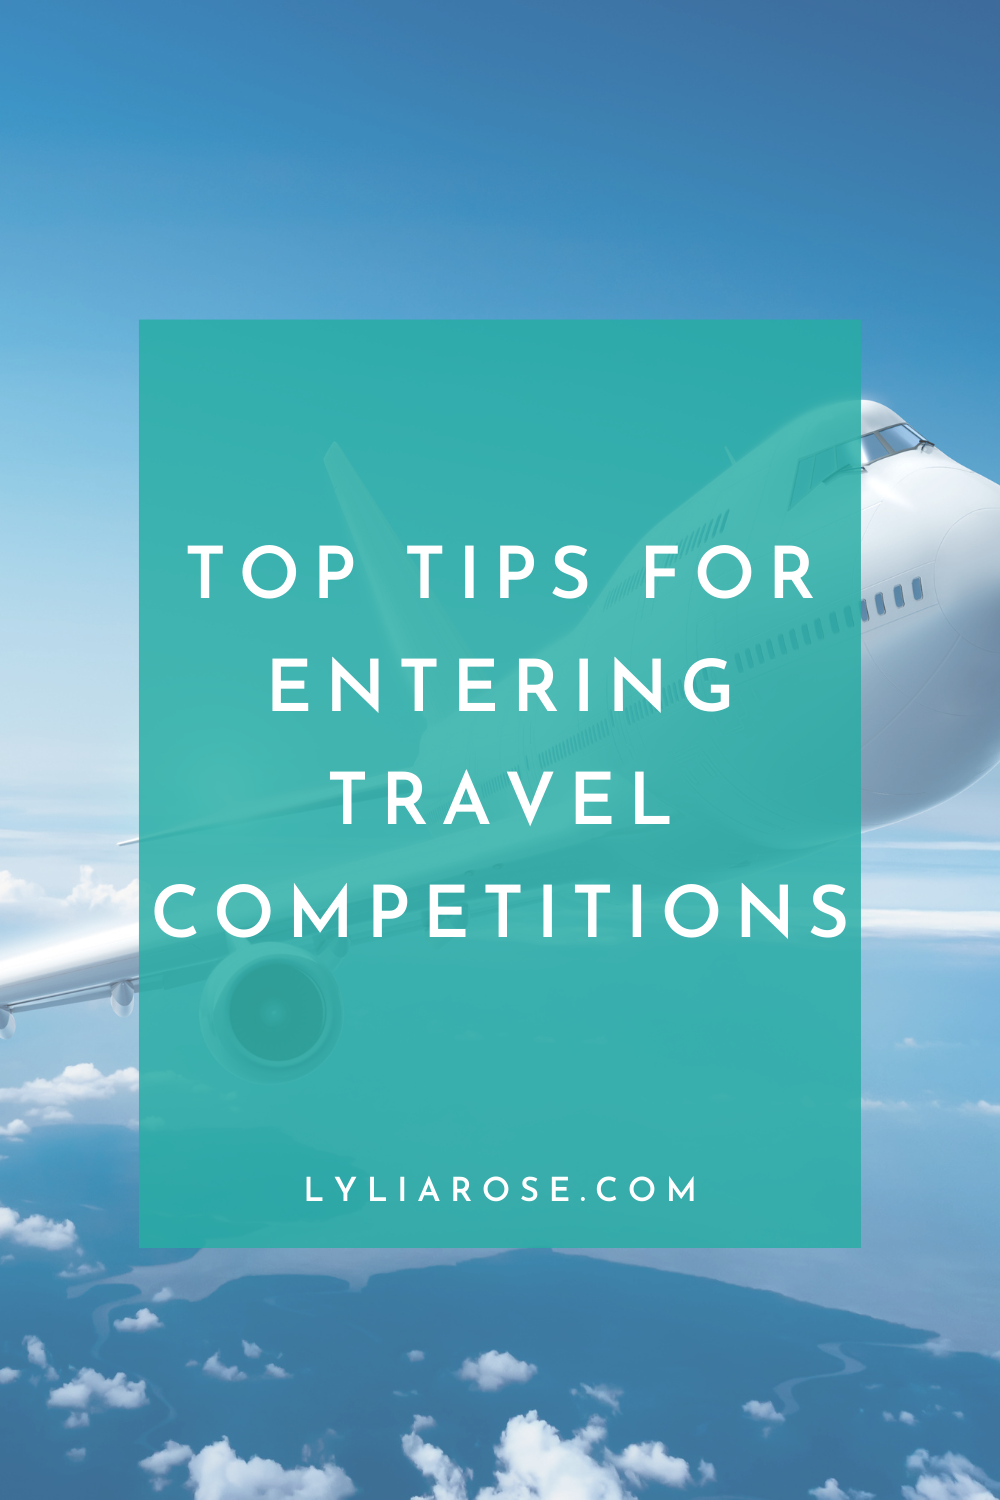 Top tips for entering travel competitions